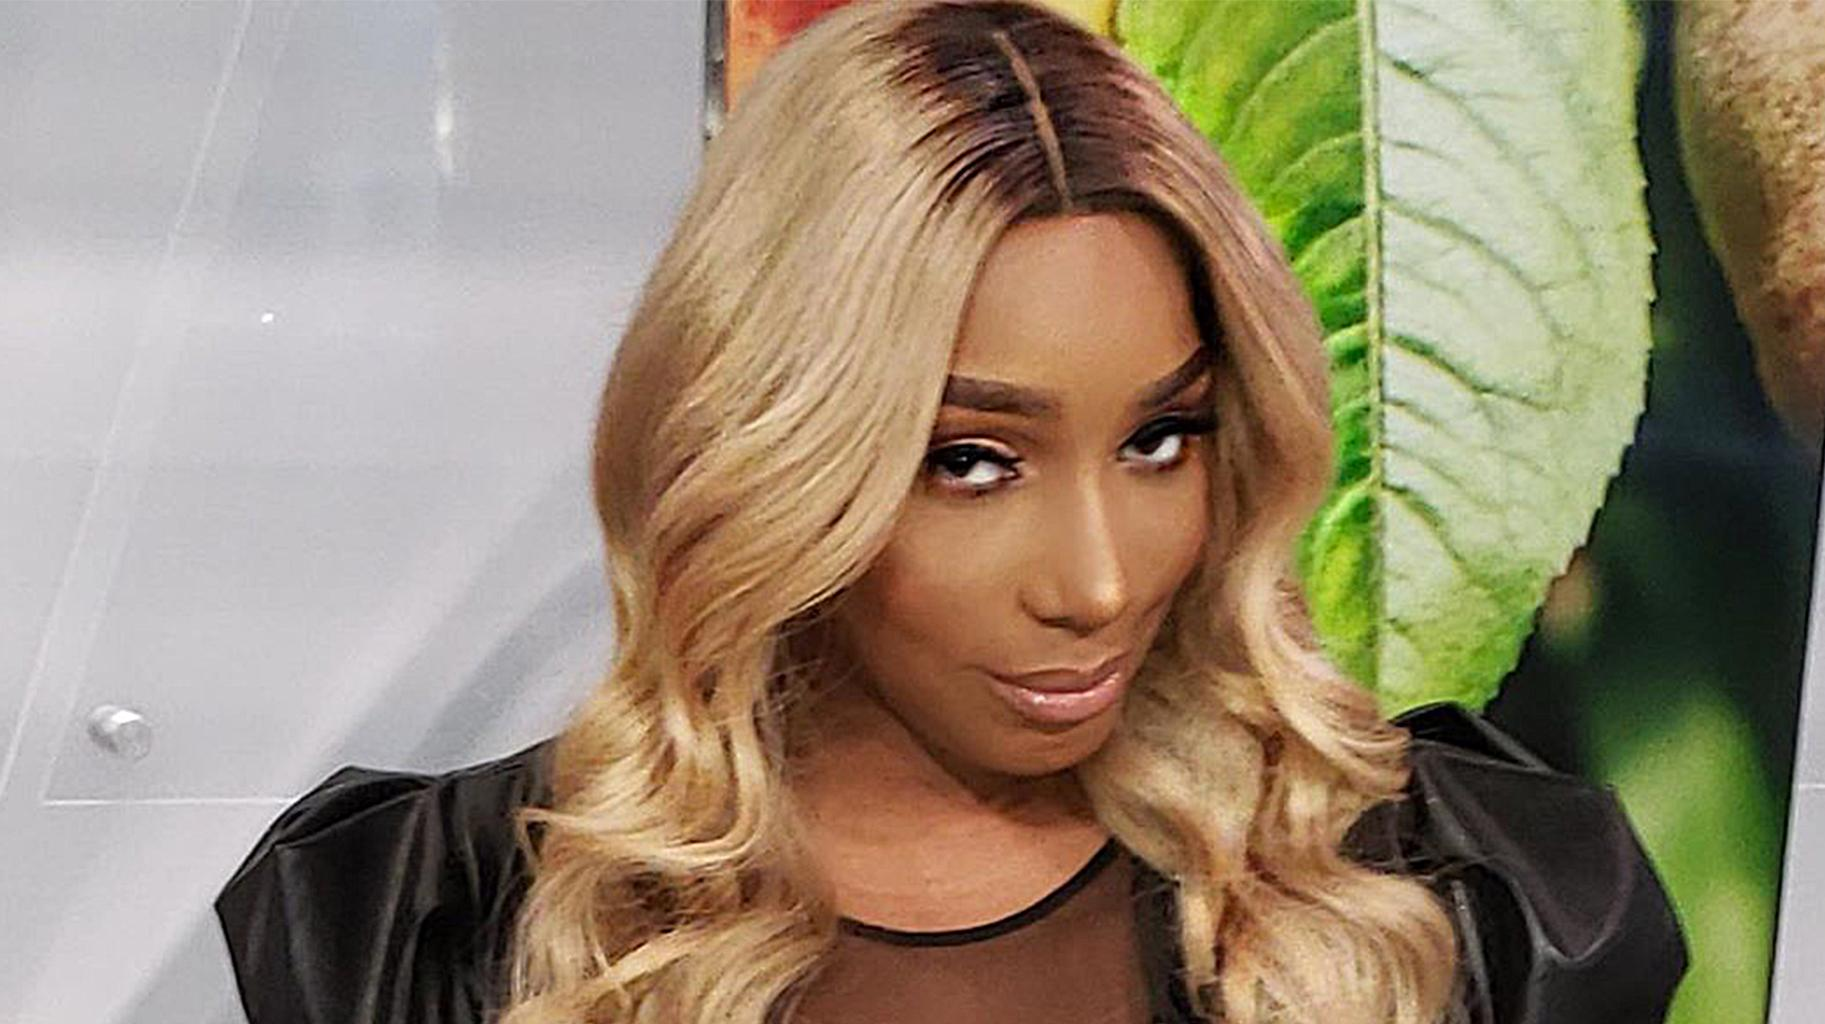 NeNe Leakes Shows Fans What Happened At The Mall Where Her Swagg Boutique Is Located